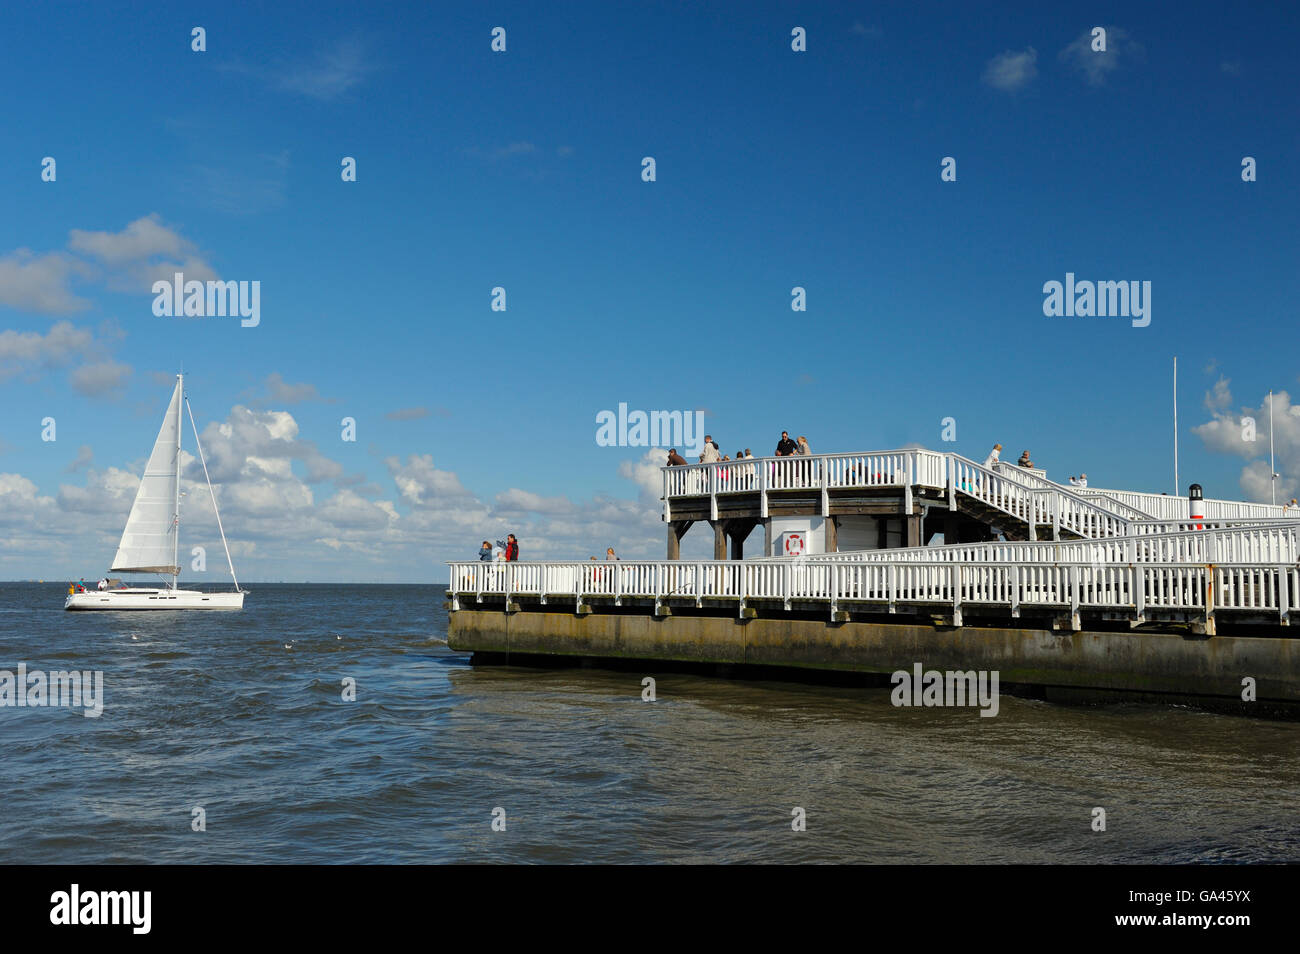 Alte Liebe, harbour of Cuxhaven, Germany - Stock Image